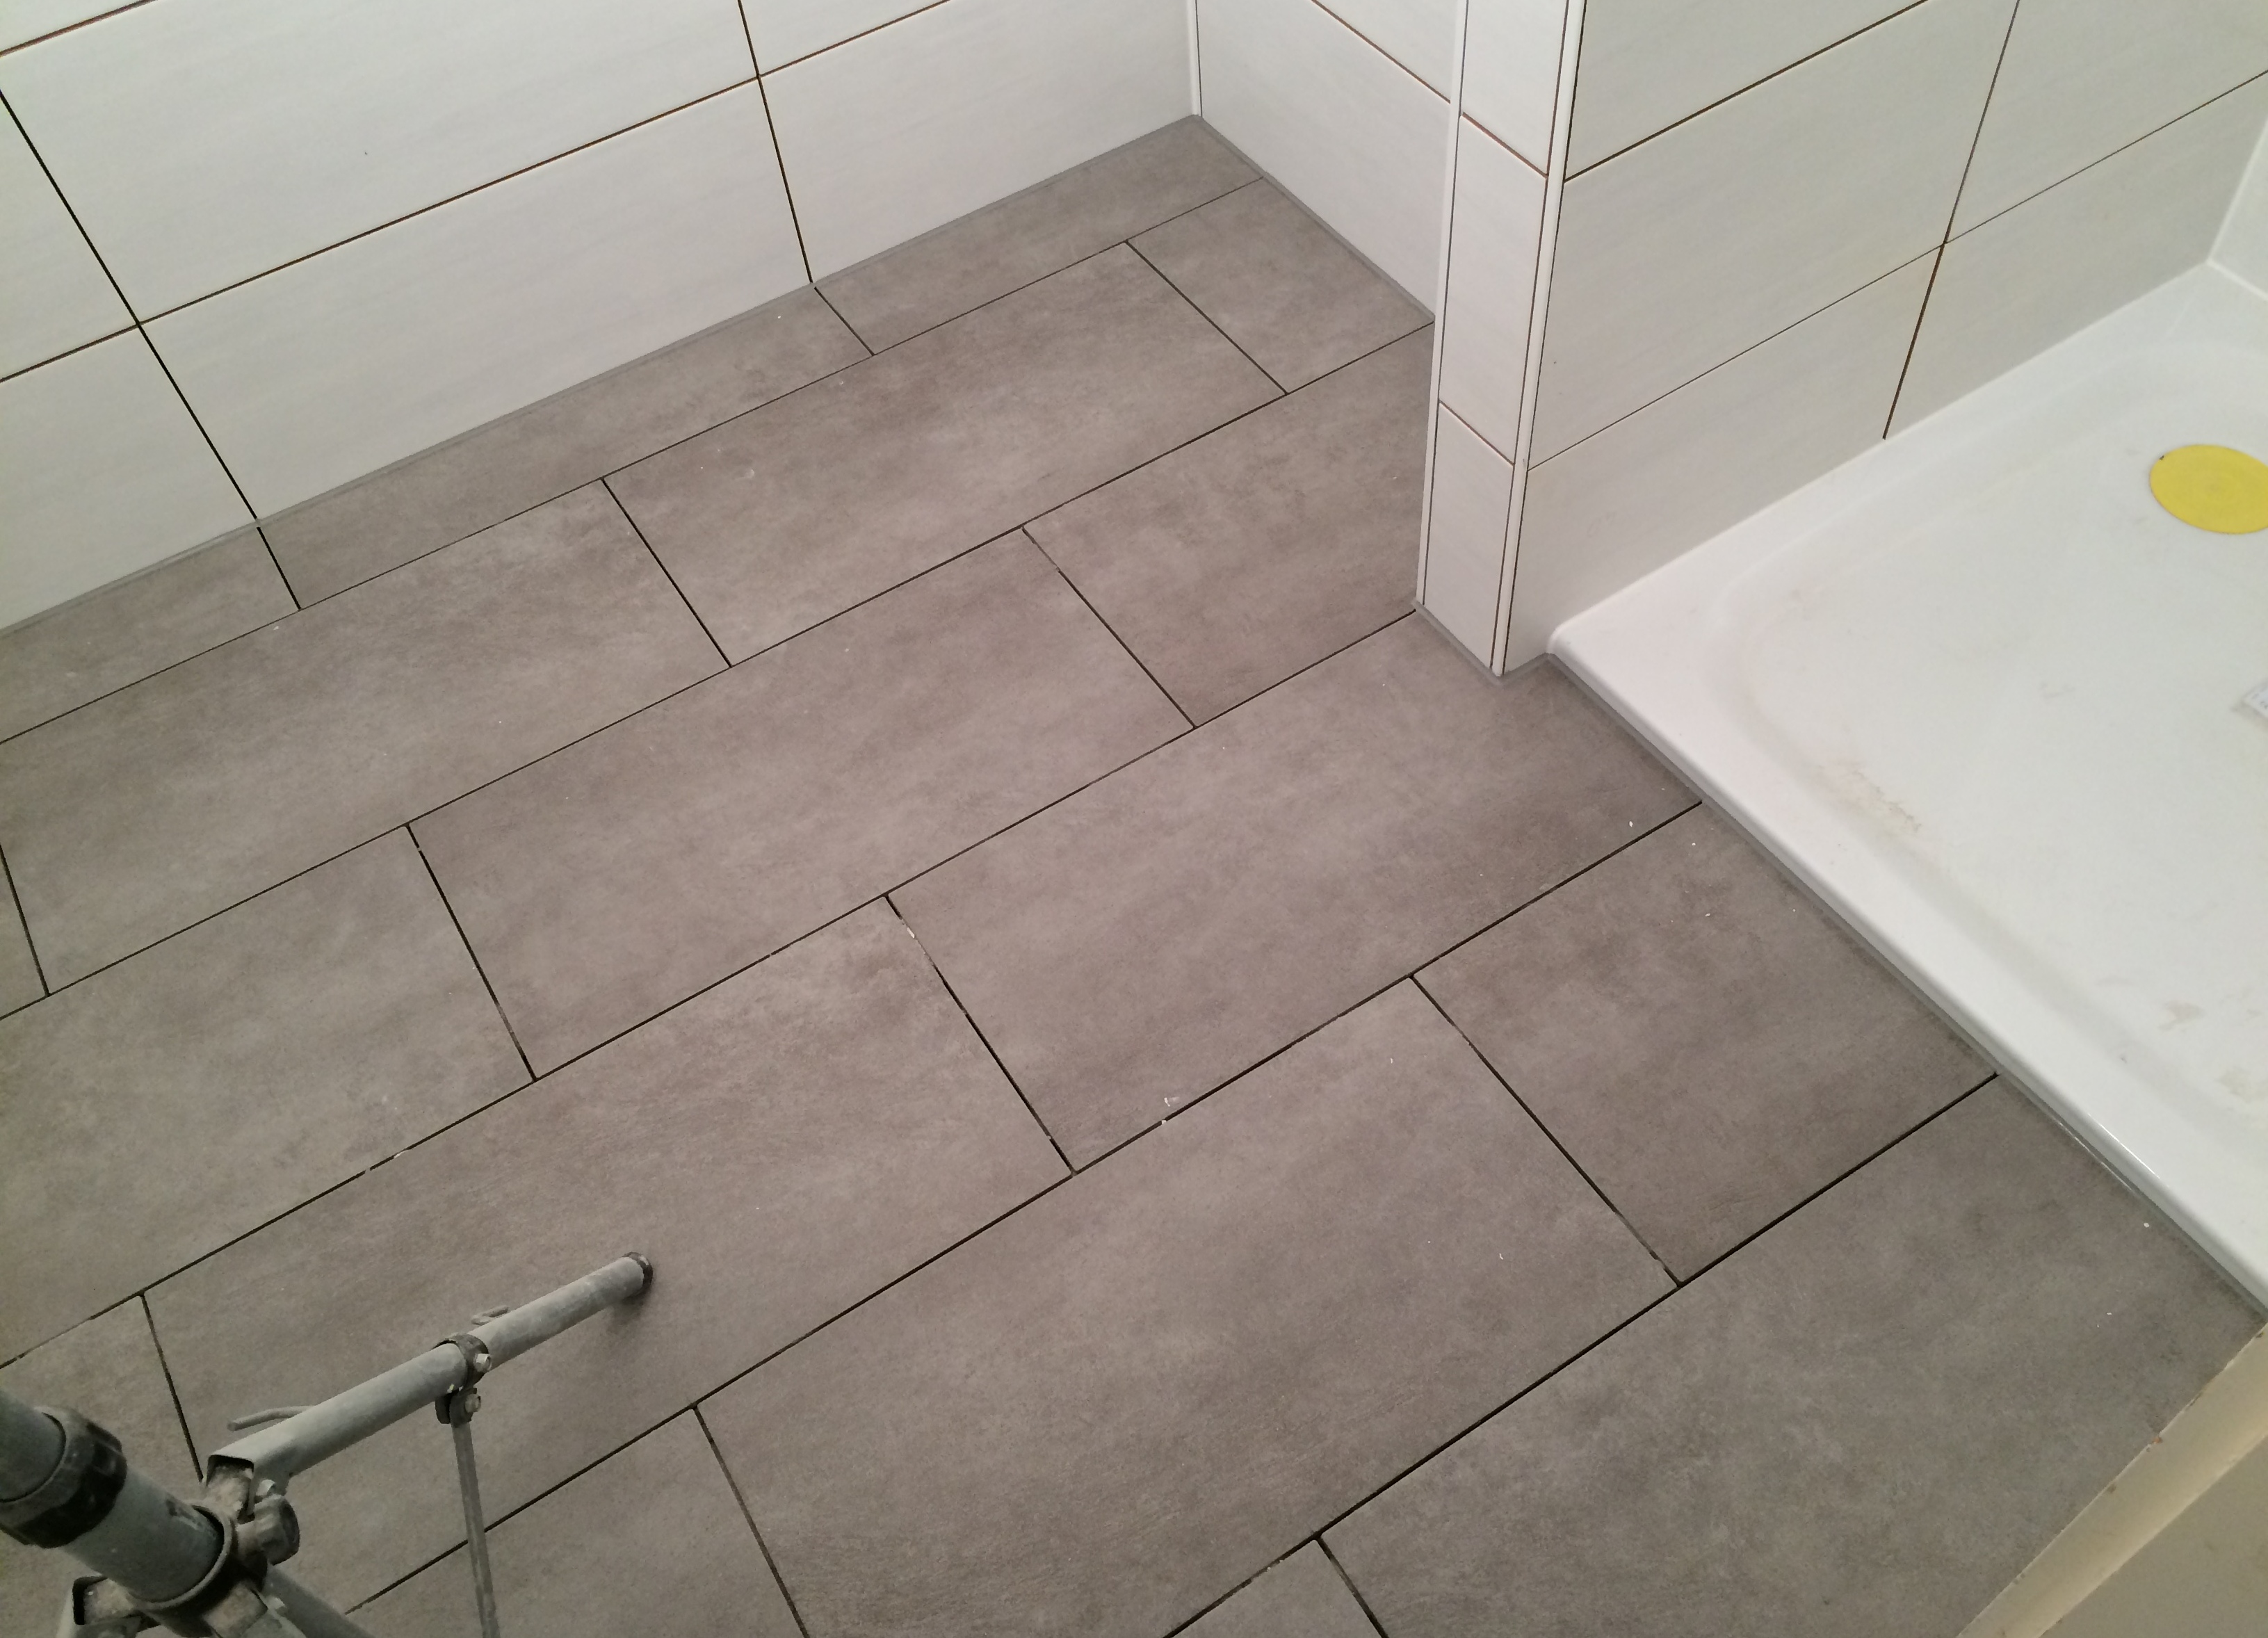 R novation d une salle de bain muraz revey s rl for Carrelage suisse